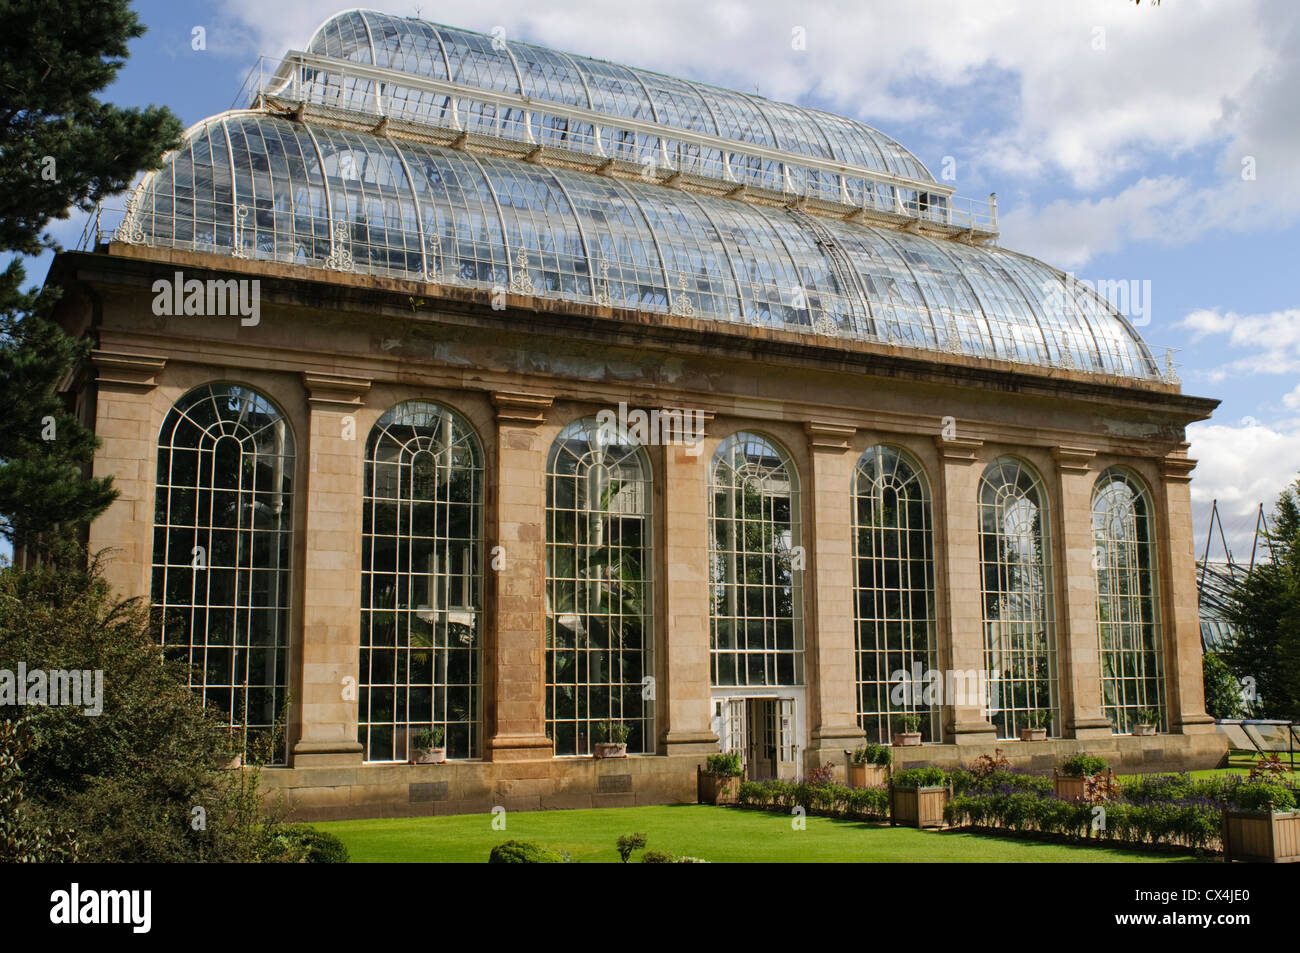 Royal Botanic Garden Edinburgh, Glasshouse. - Stock Image